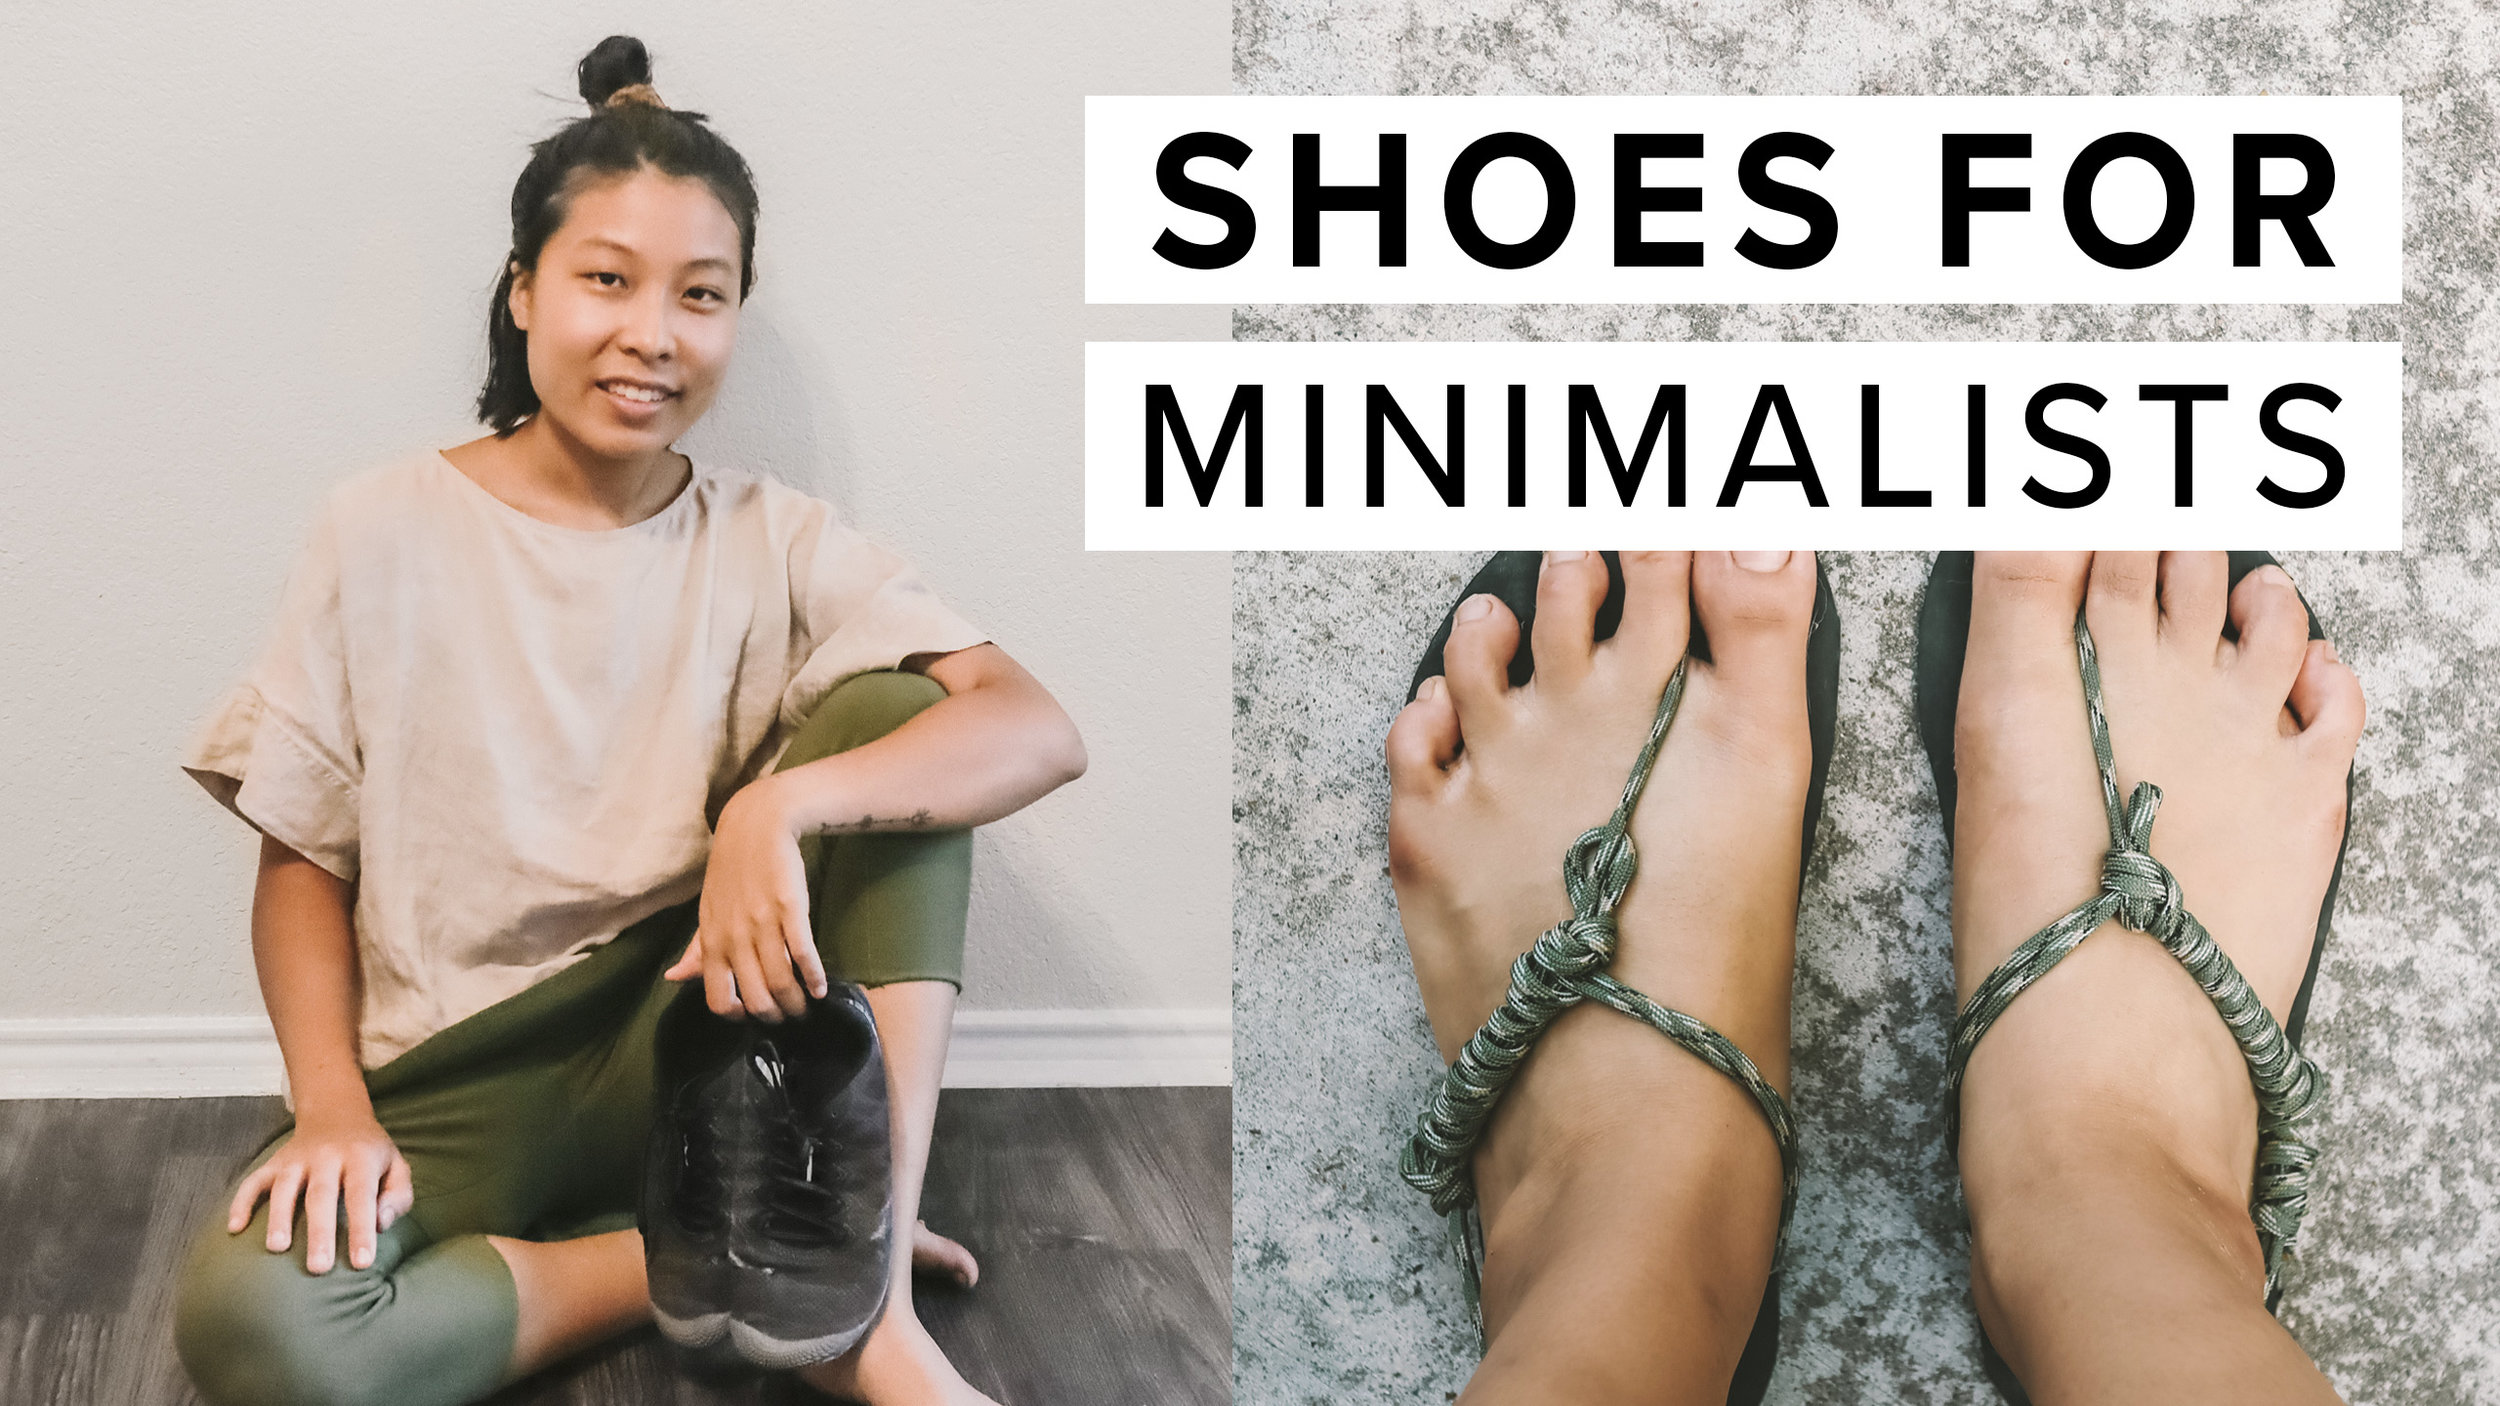 shoes-for-minimalists.jpg